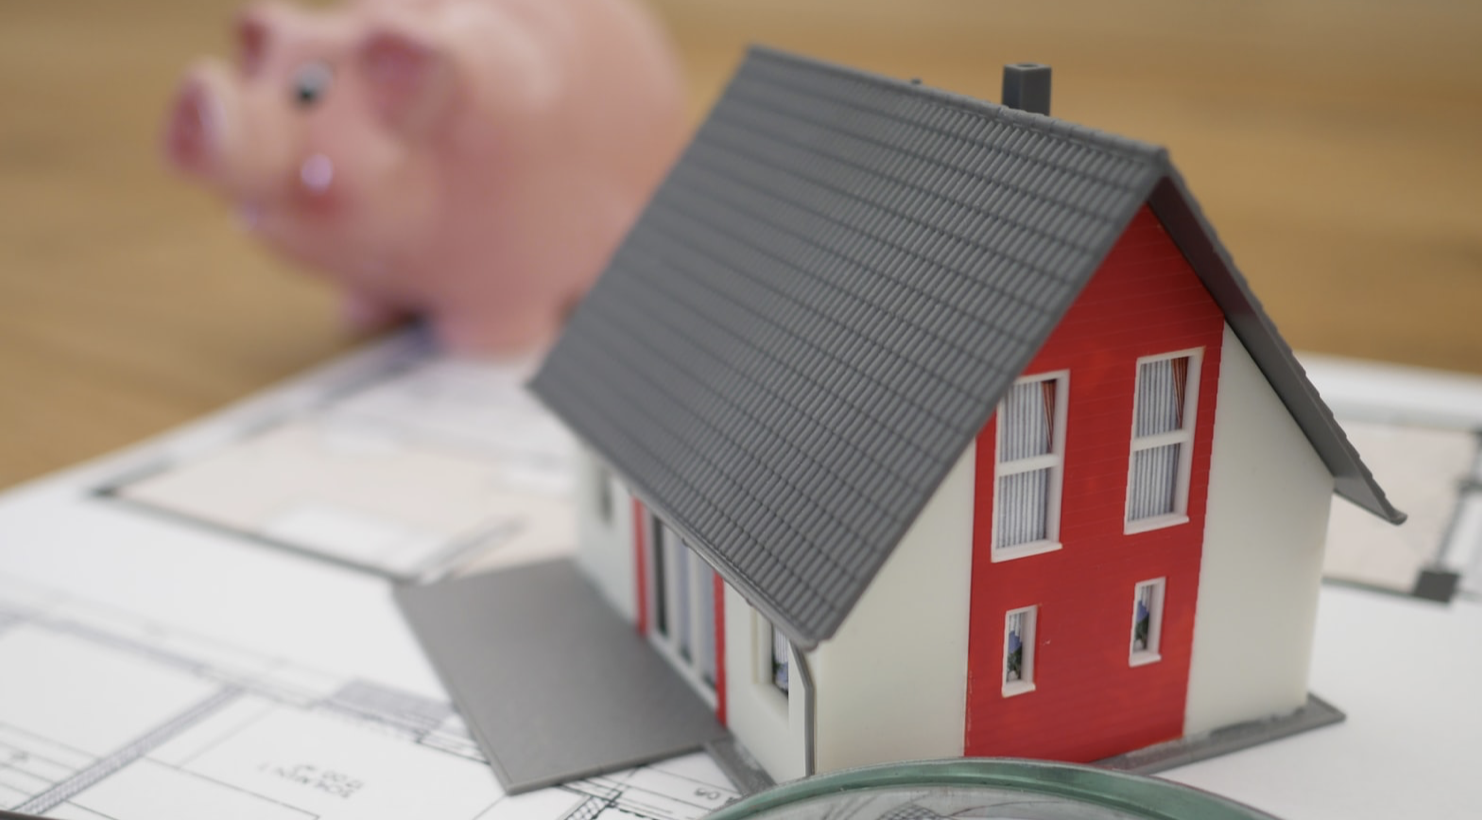 How Much do Most Real Estate Professionals Spend on Lead Generation? You Might Be Surprised.